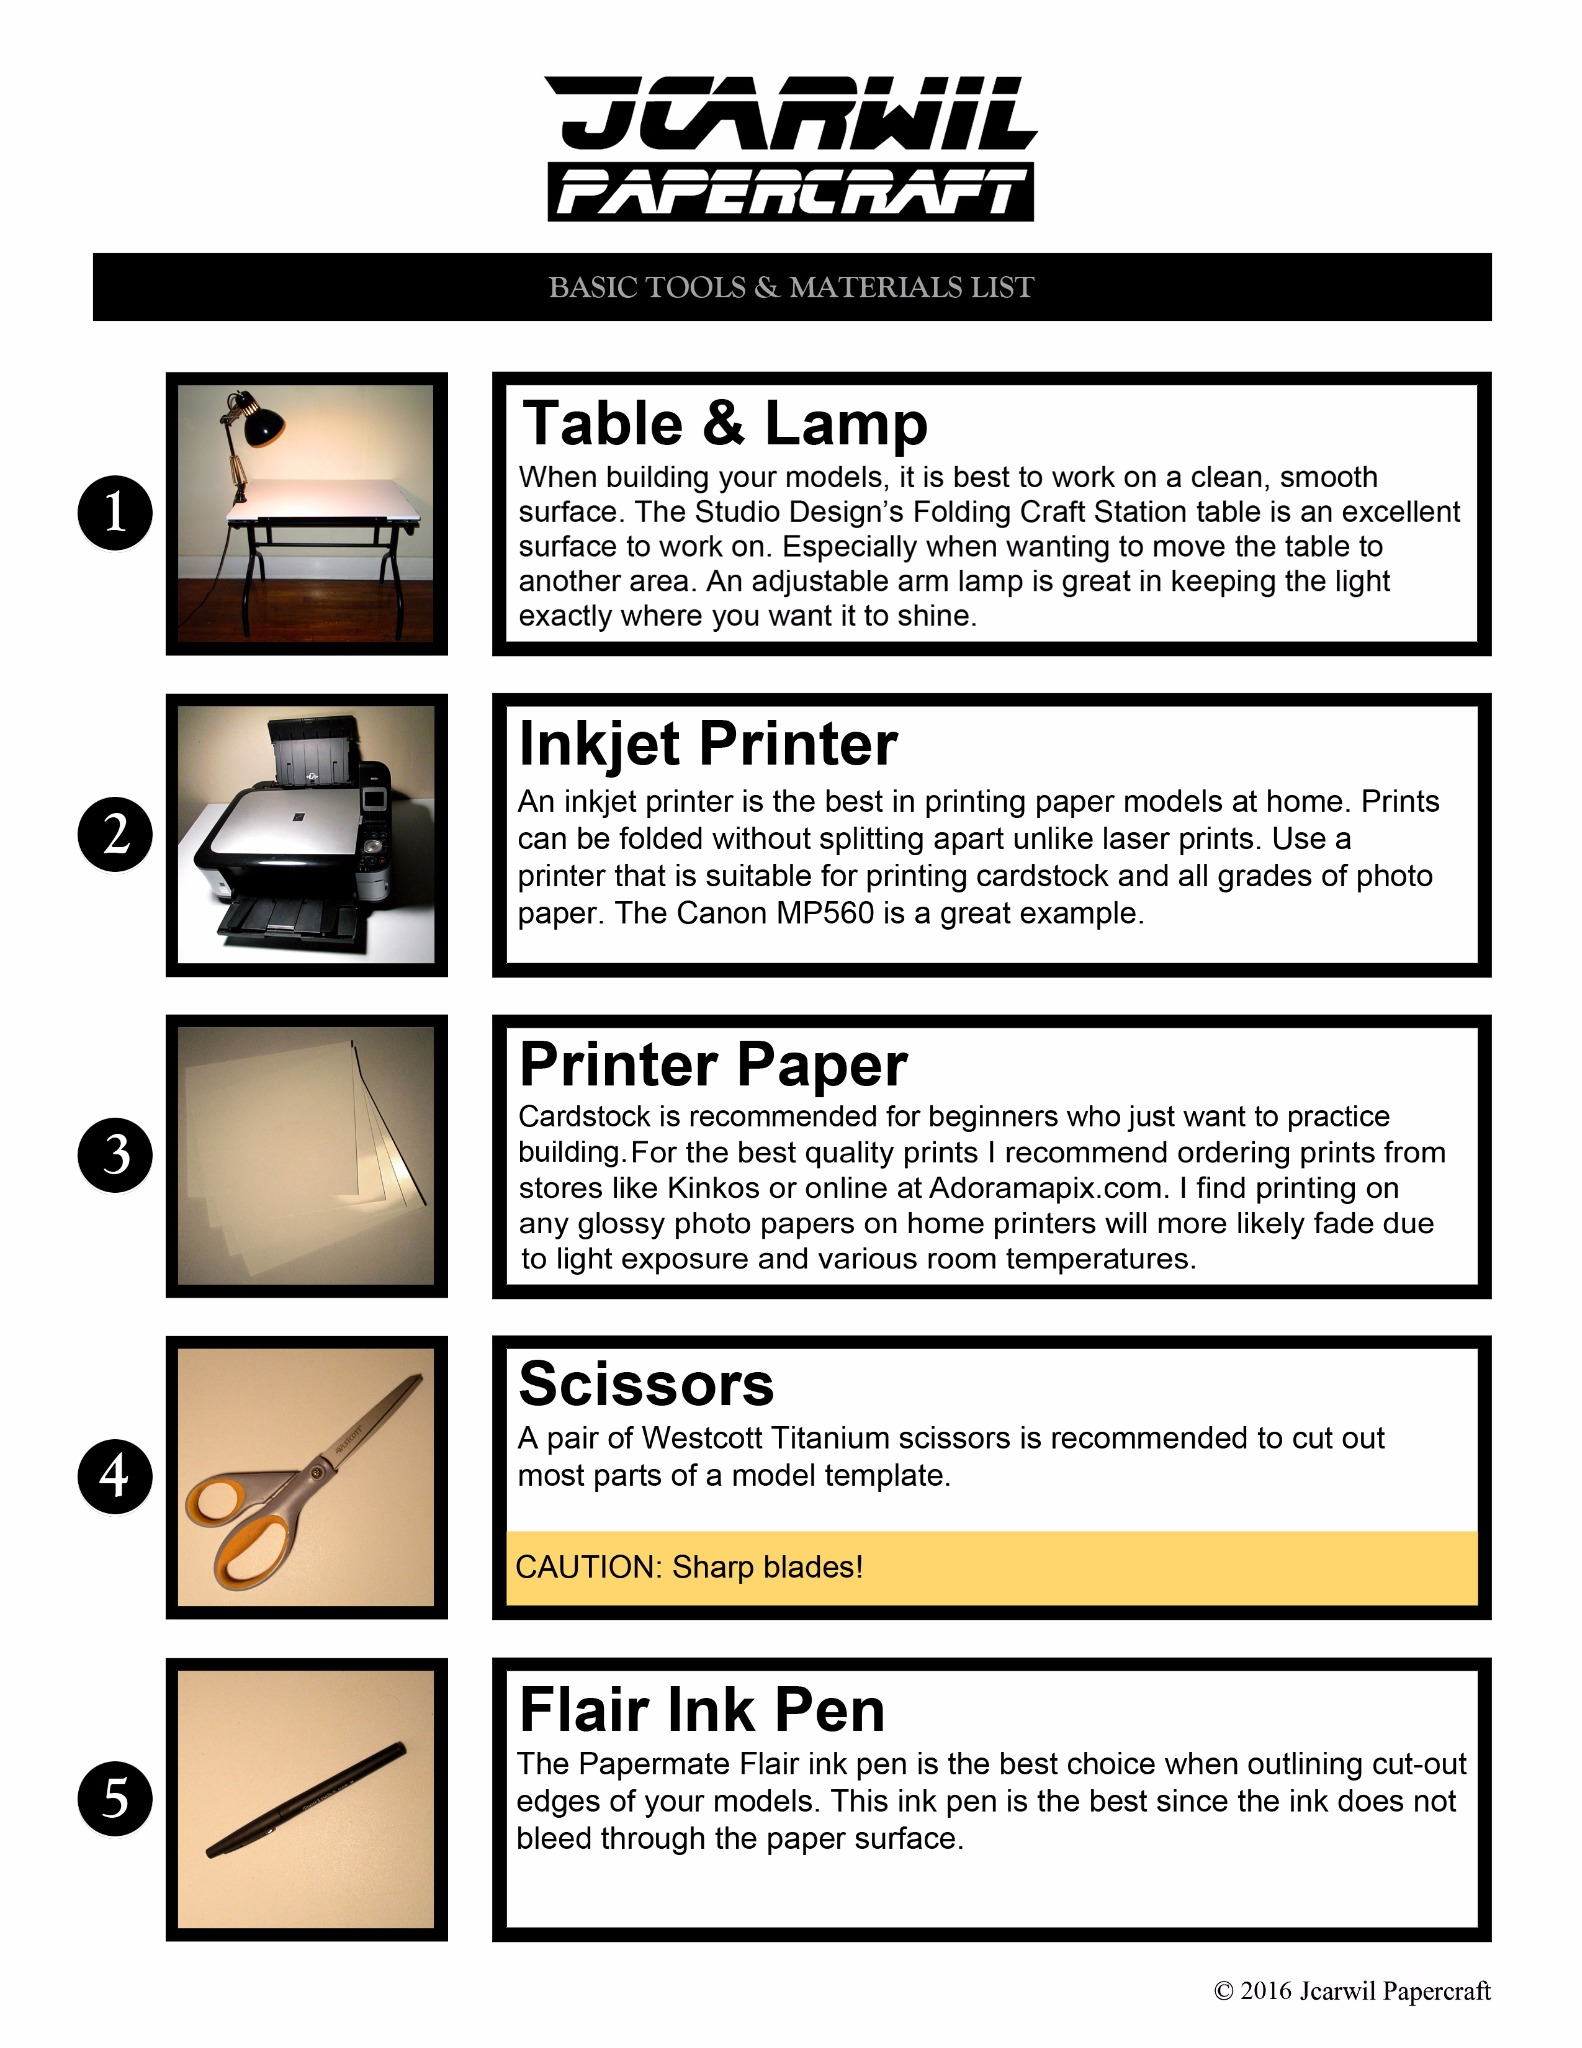 Jcarwil Papercraft Basic Tools & Materials List